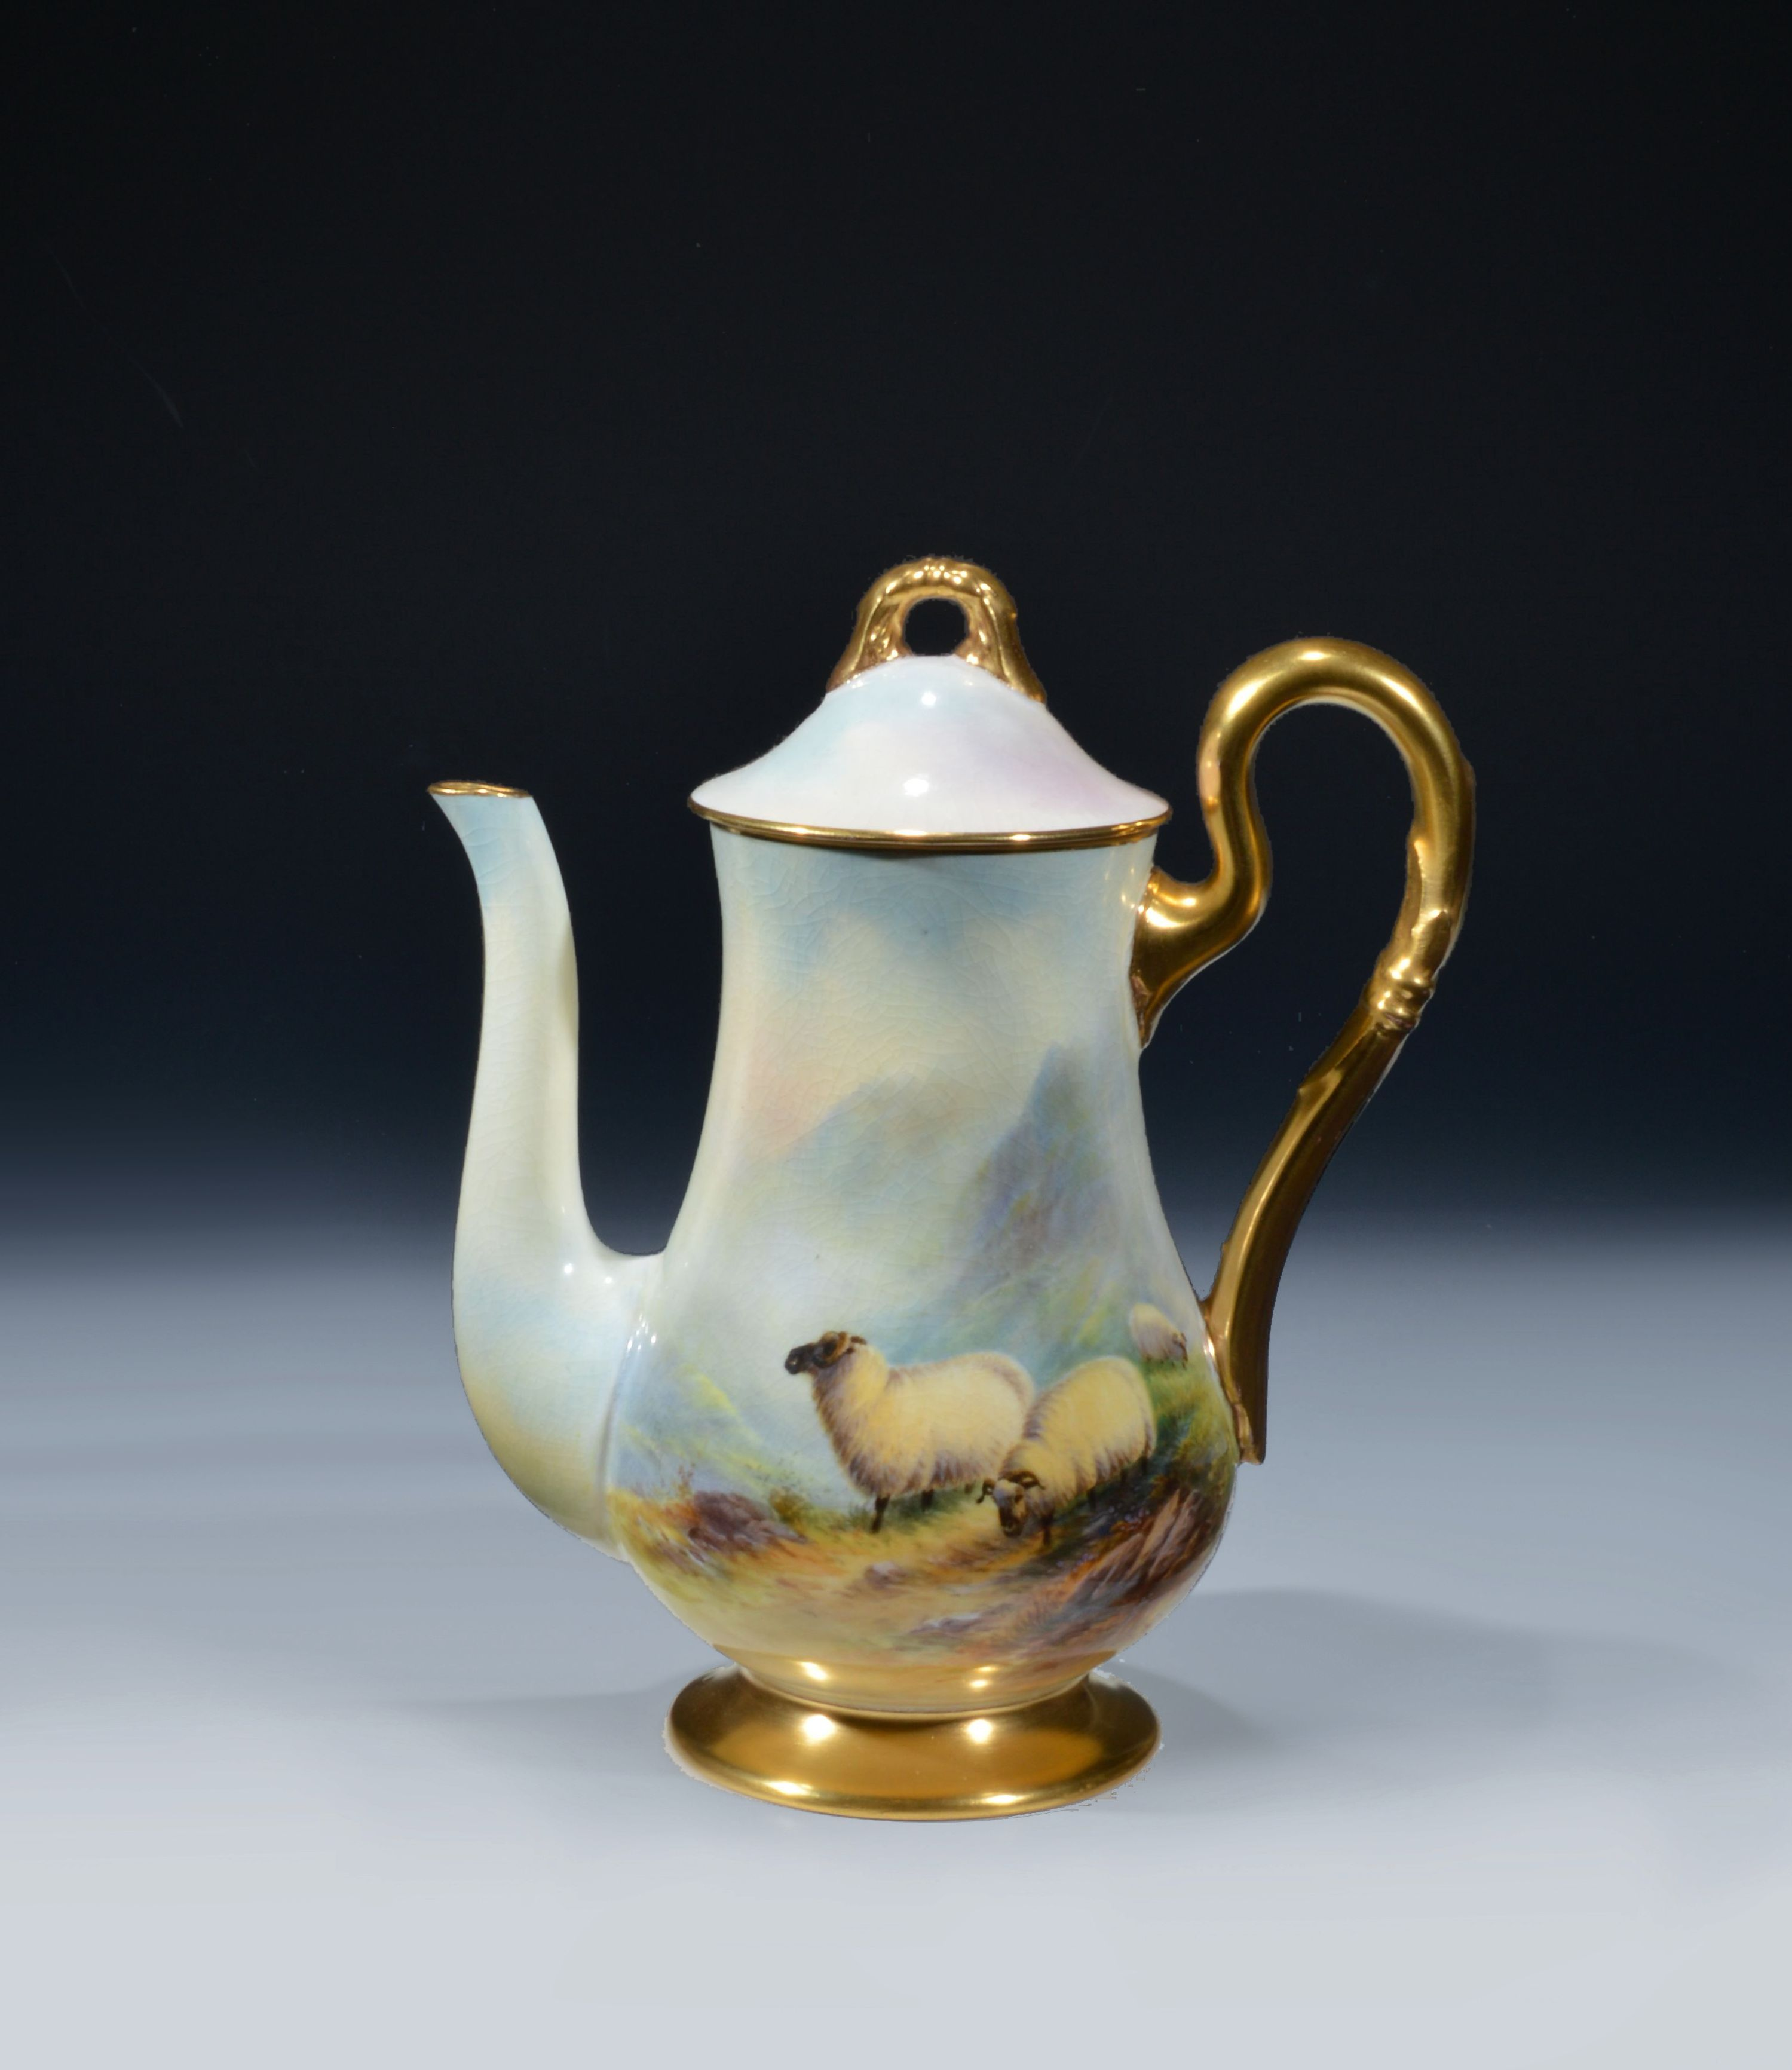 Dating royal worcester pottery